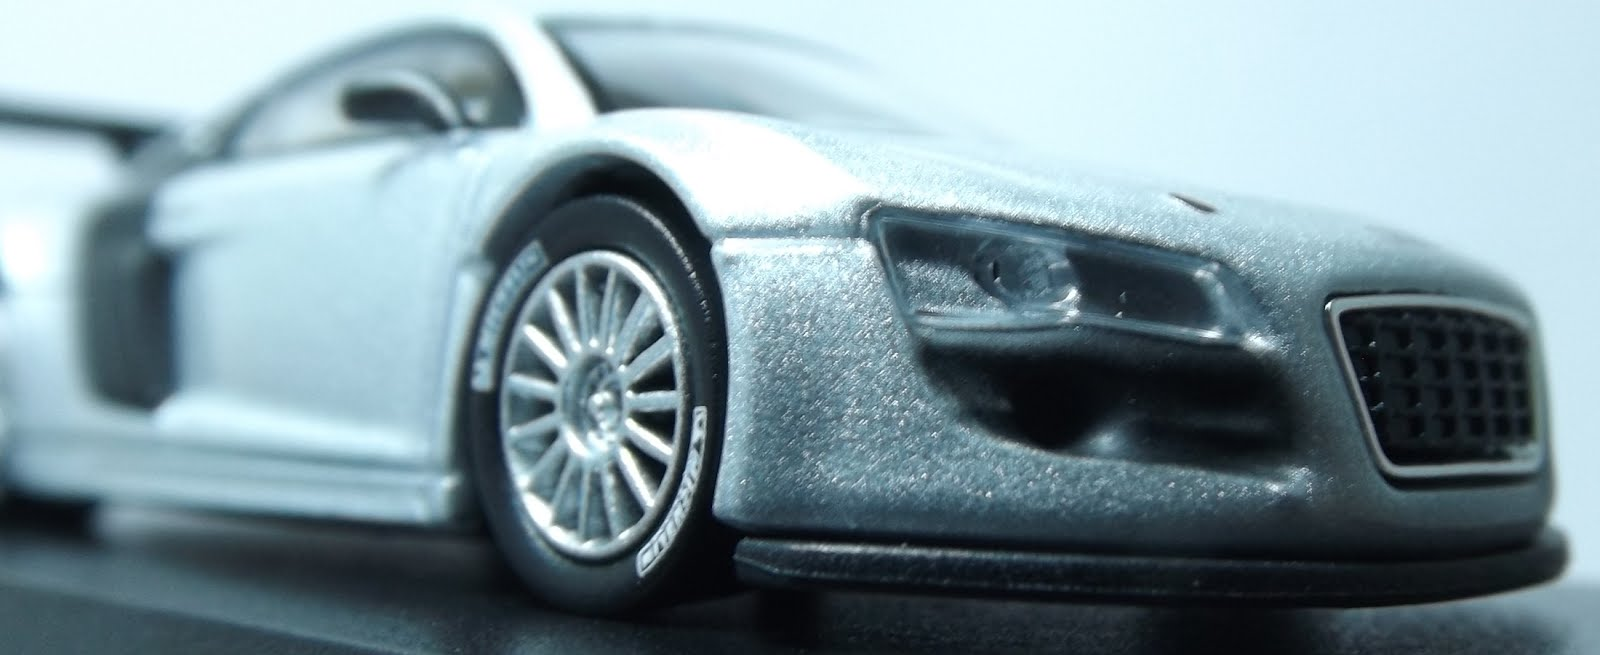 Diecast kyosho audi r8 lms up front